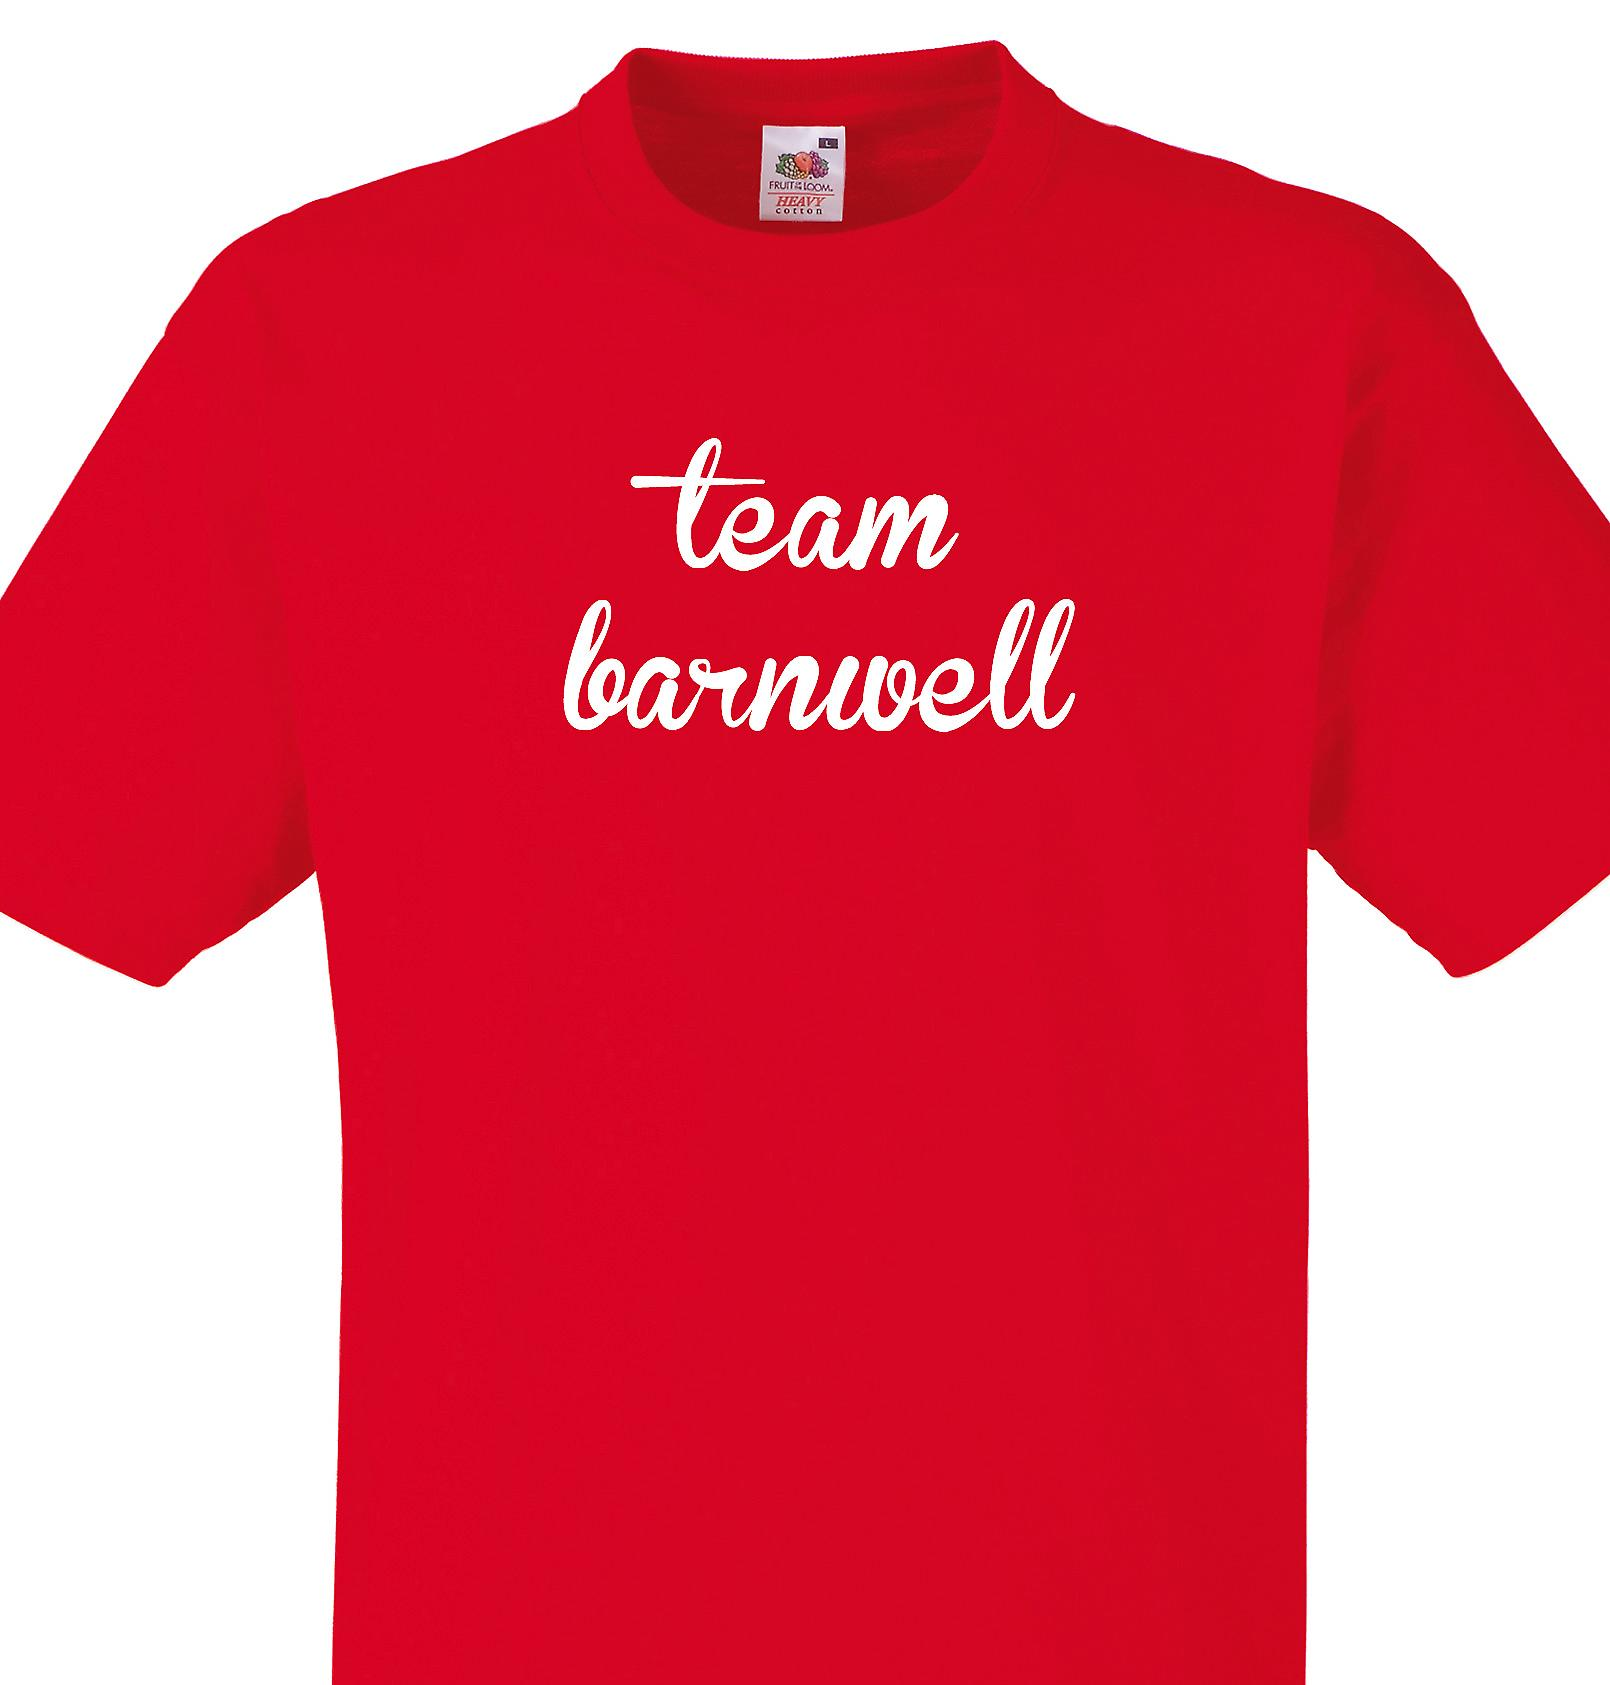 Team Barnwell Red T shirt